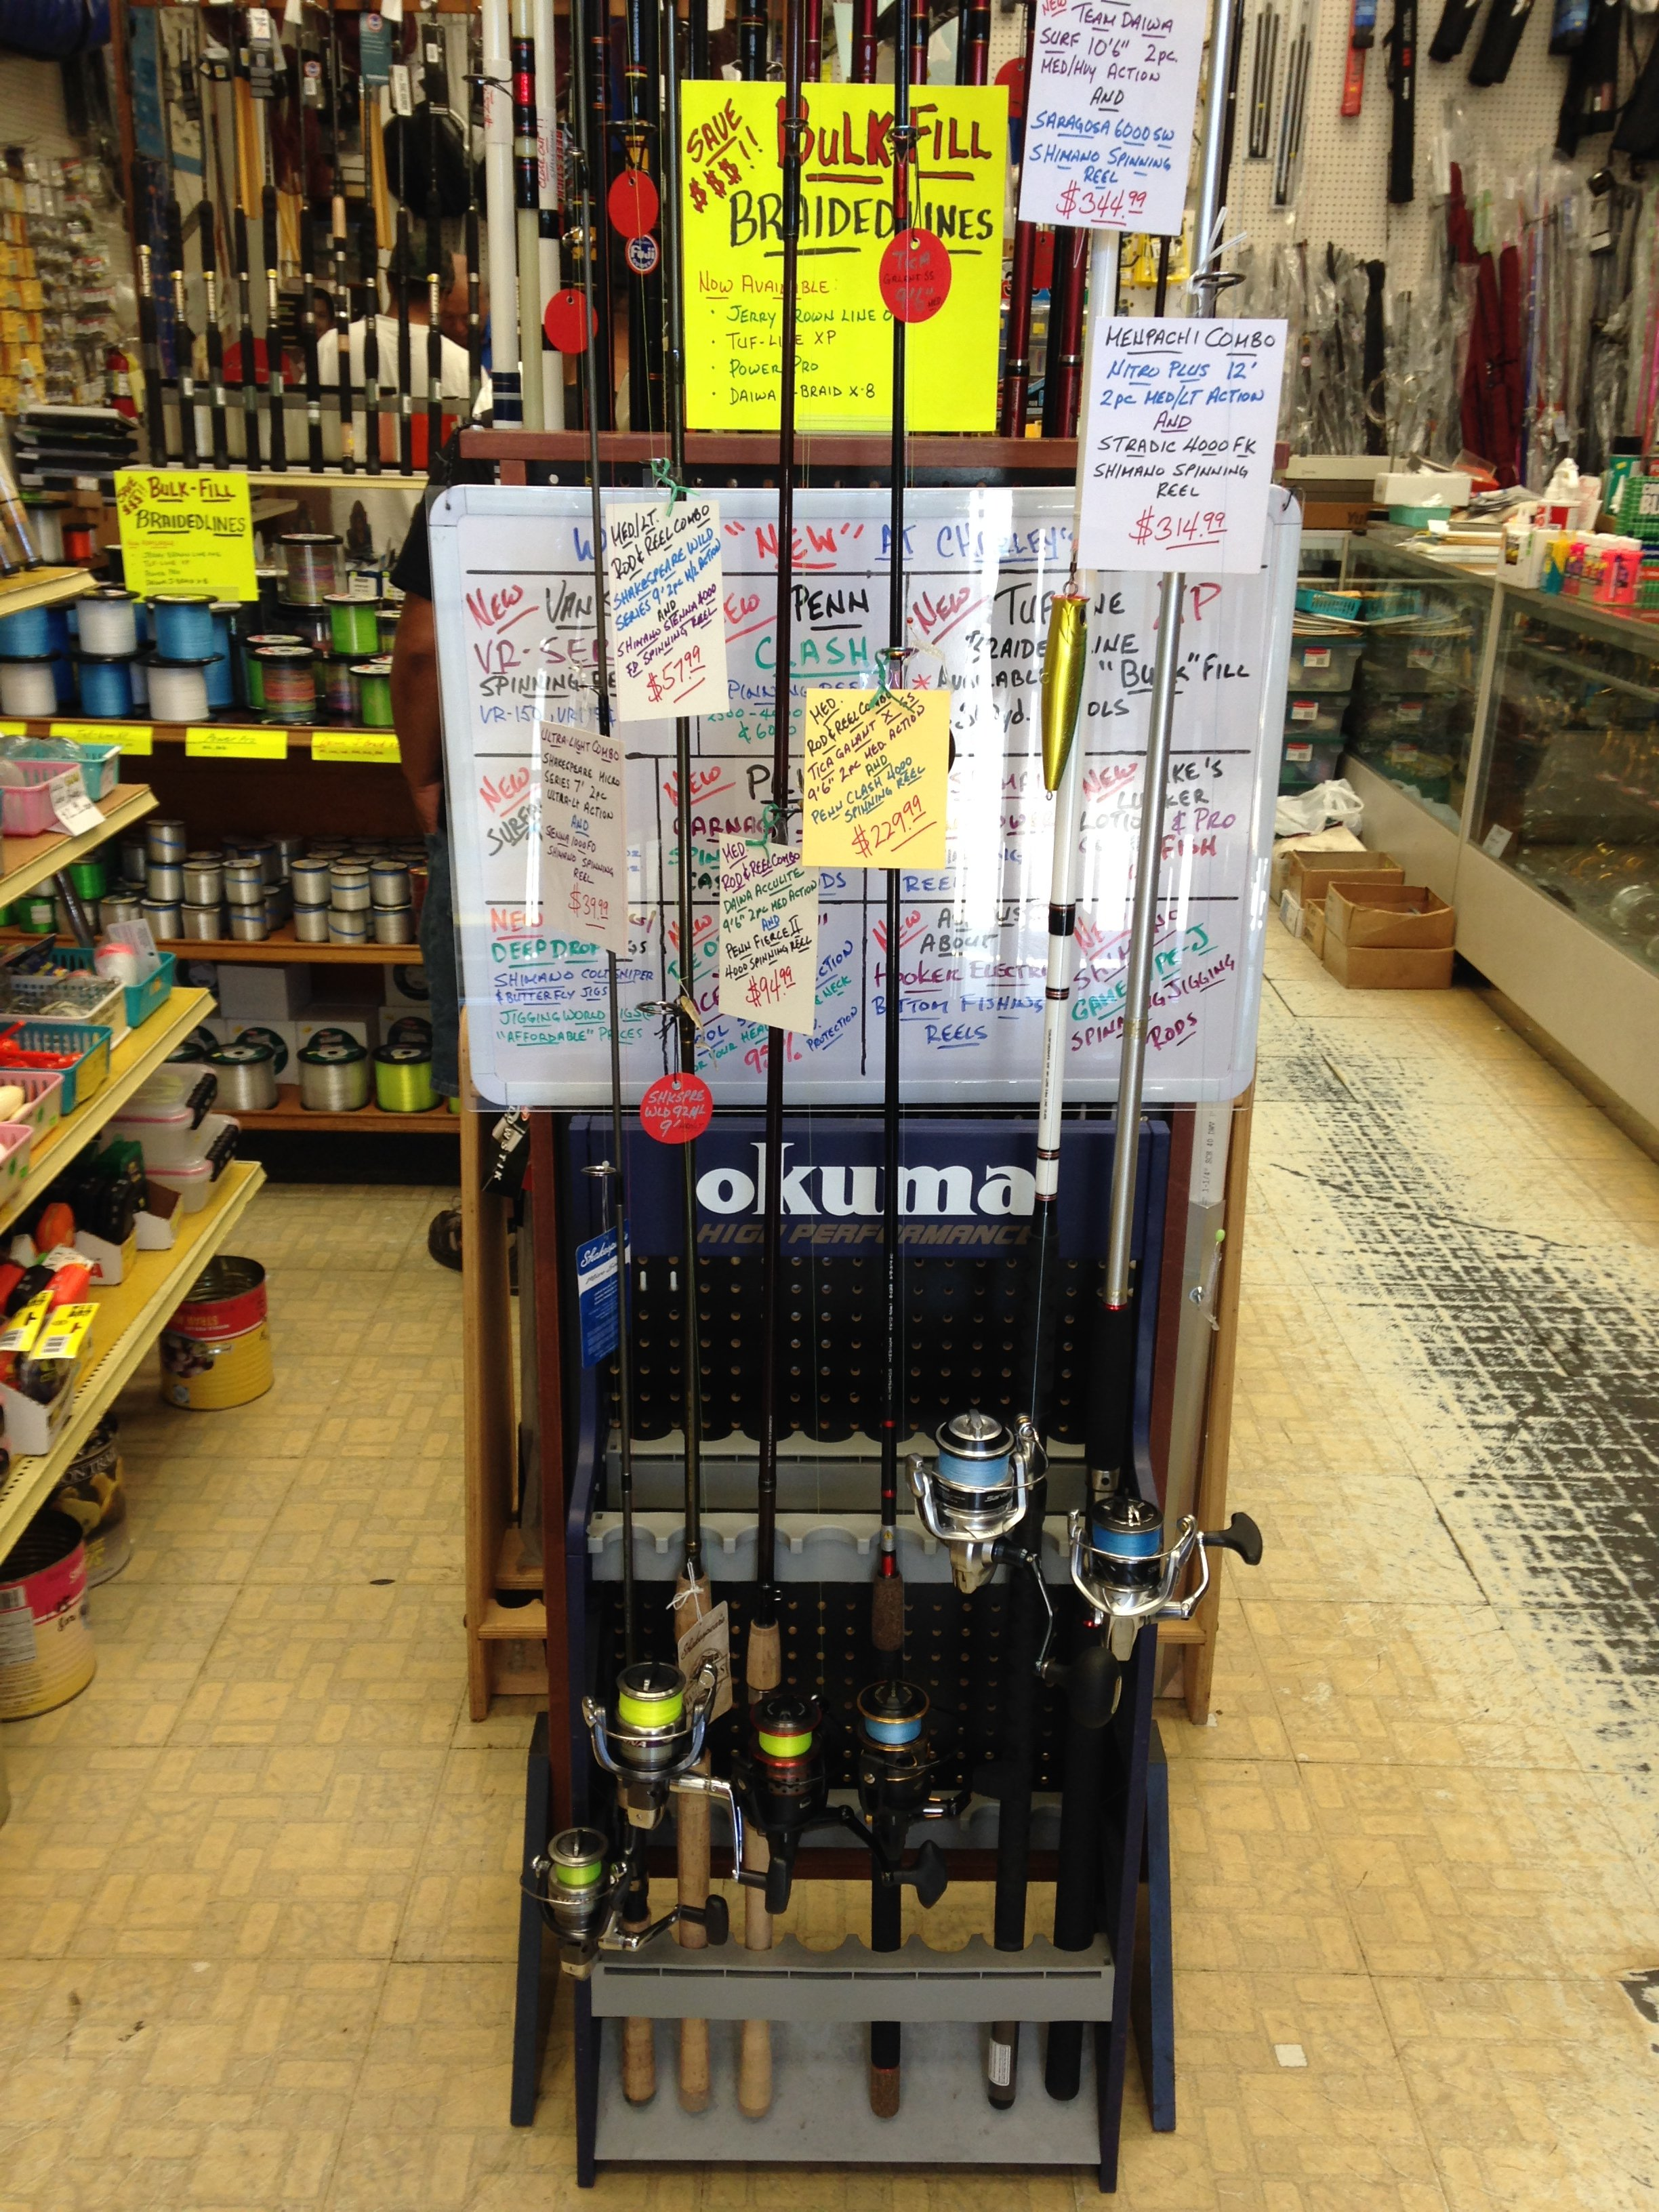 Rods and reel spinning combos at special summer prices! Call us for more info.